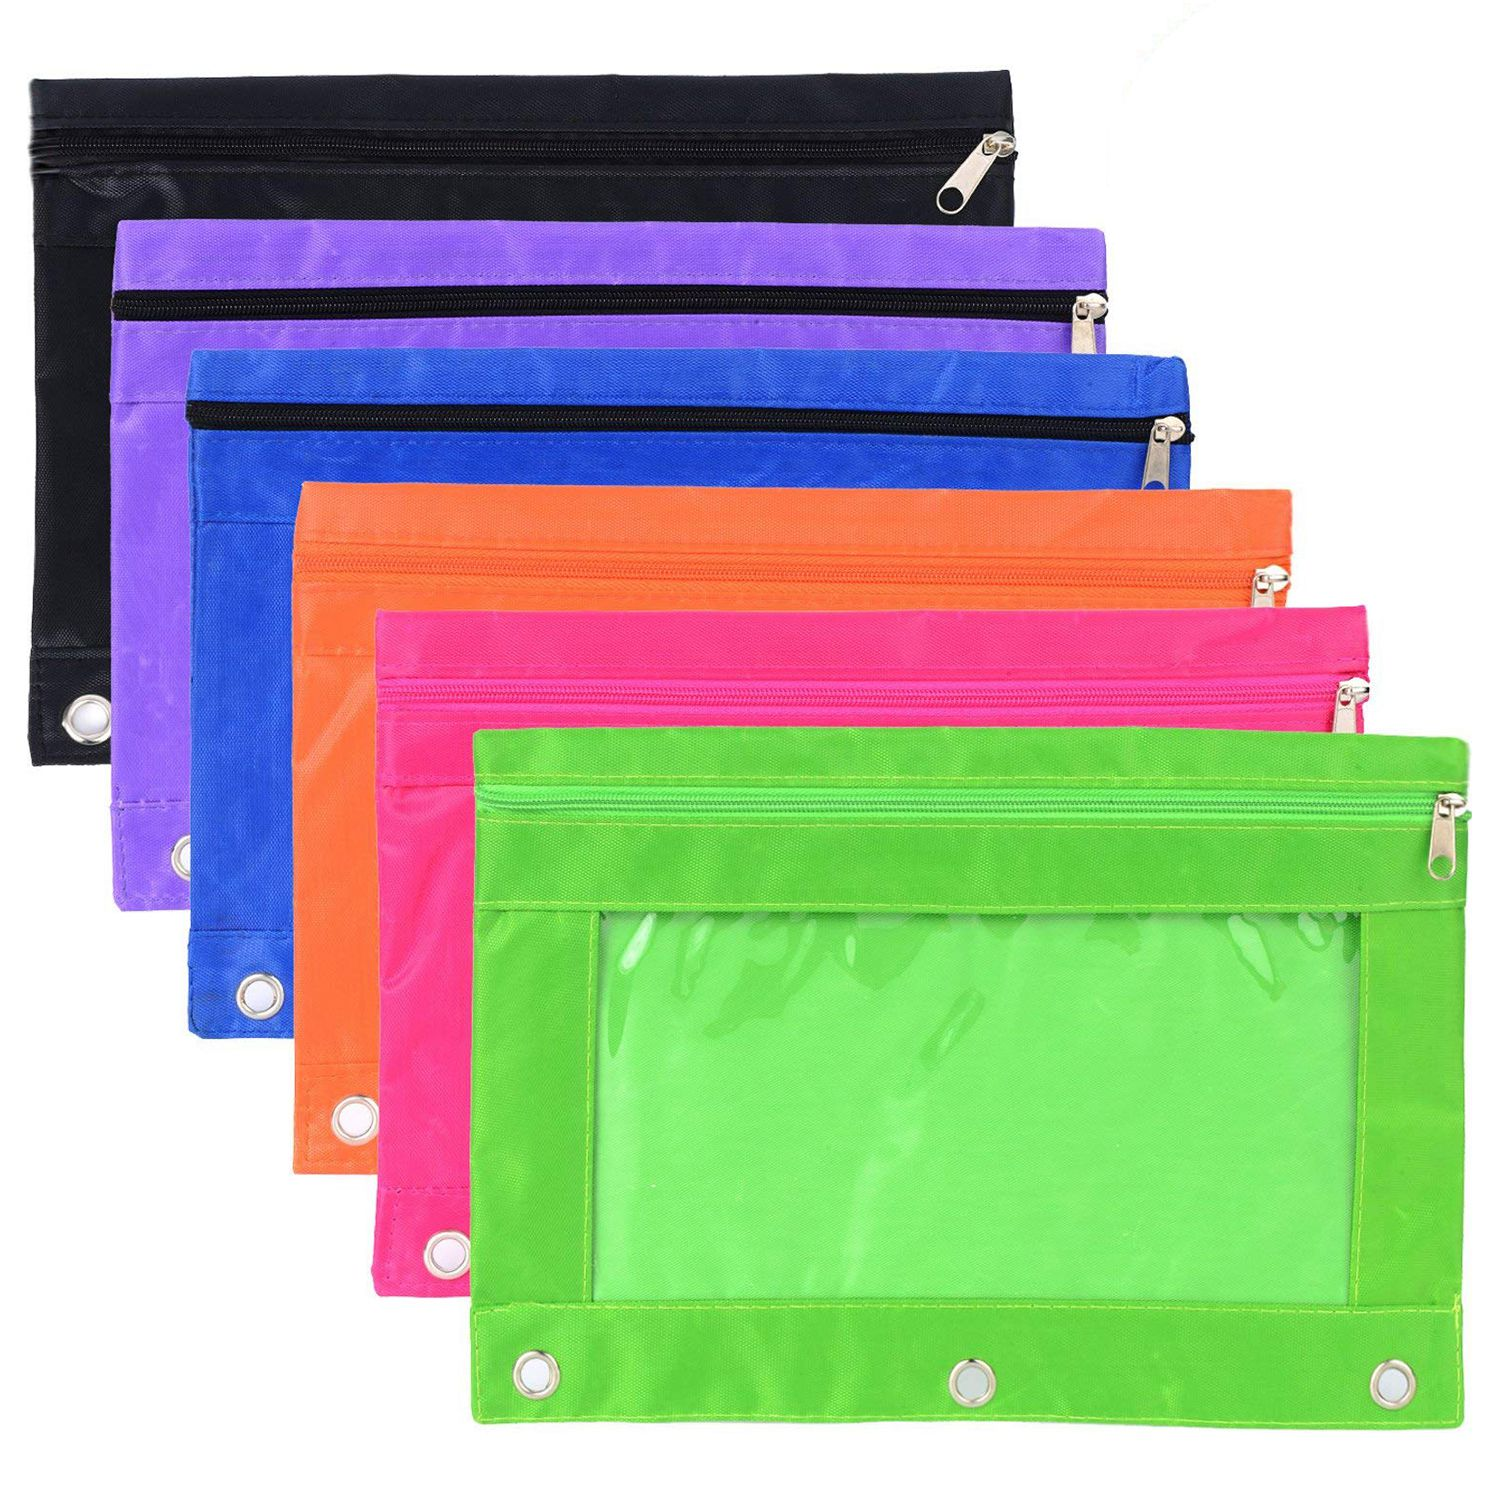 6 Pieces Ring Binder Pouch Pencil Bag With Holes 3-Ring Zipper Pouches With Clear Window (6 Colors)